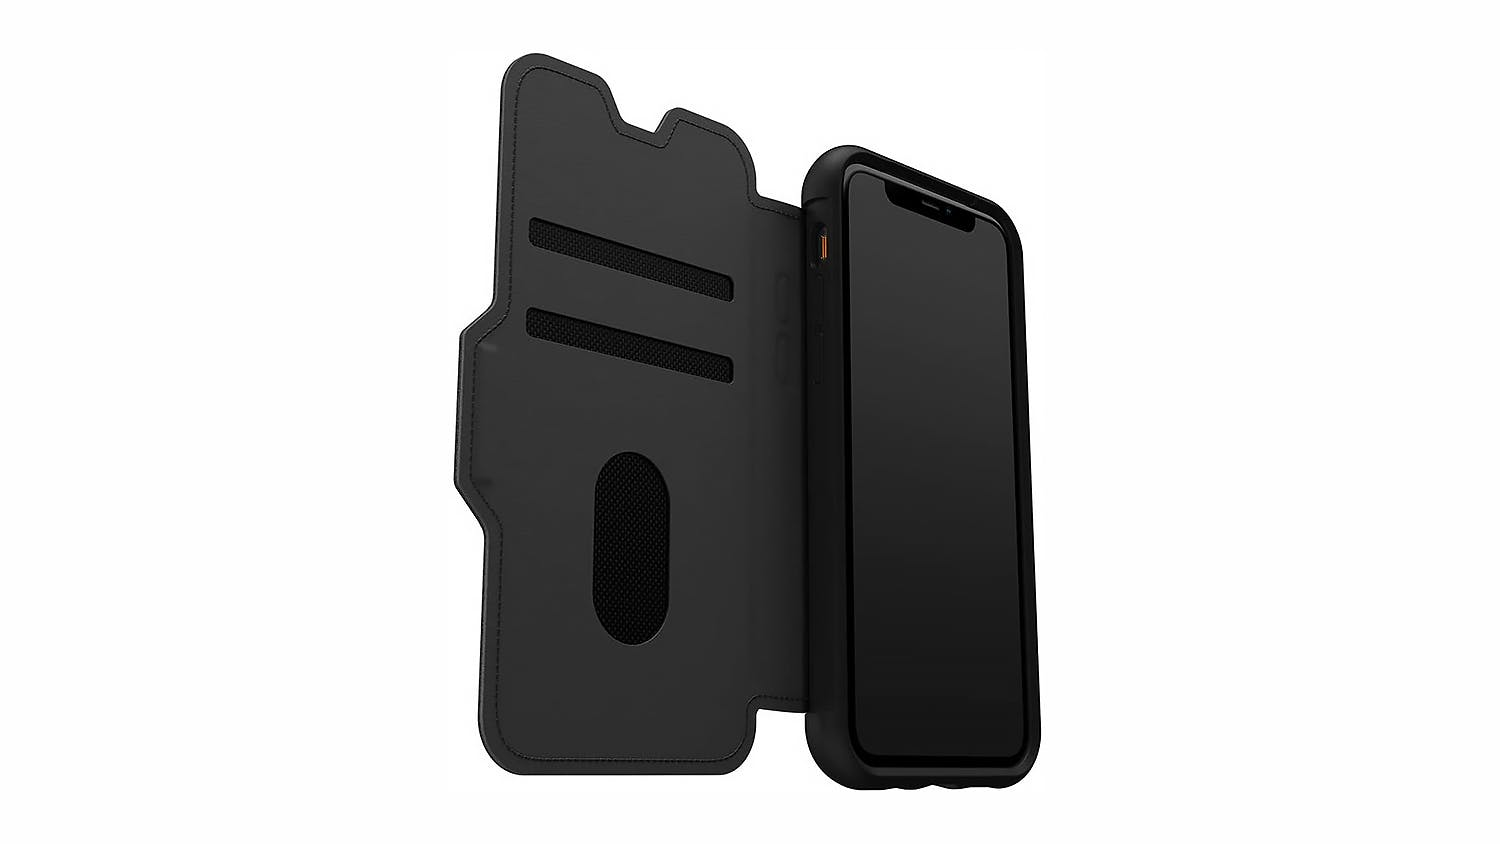 Otterbox Strada Case for iPhone 11 Pro - Black